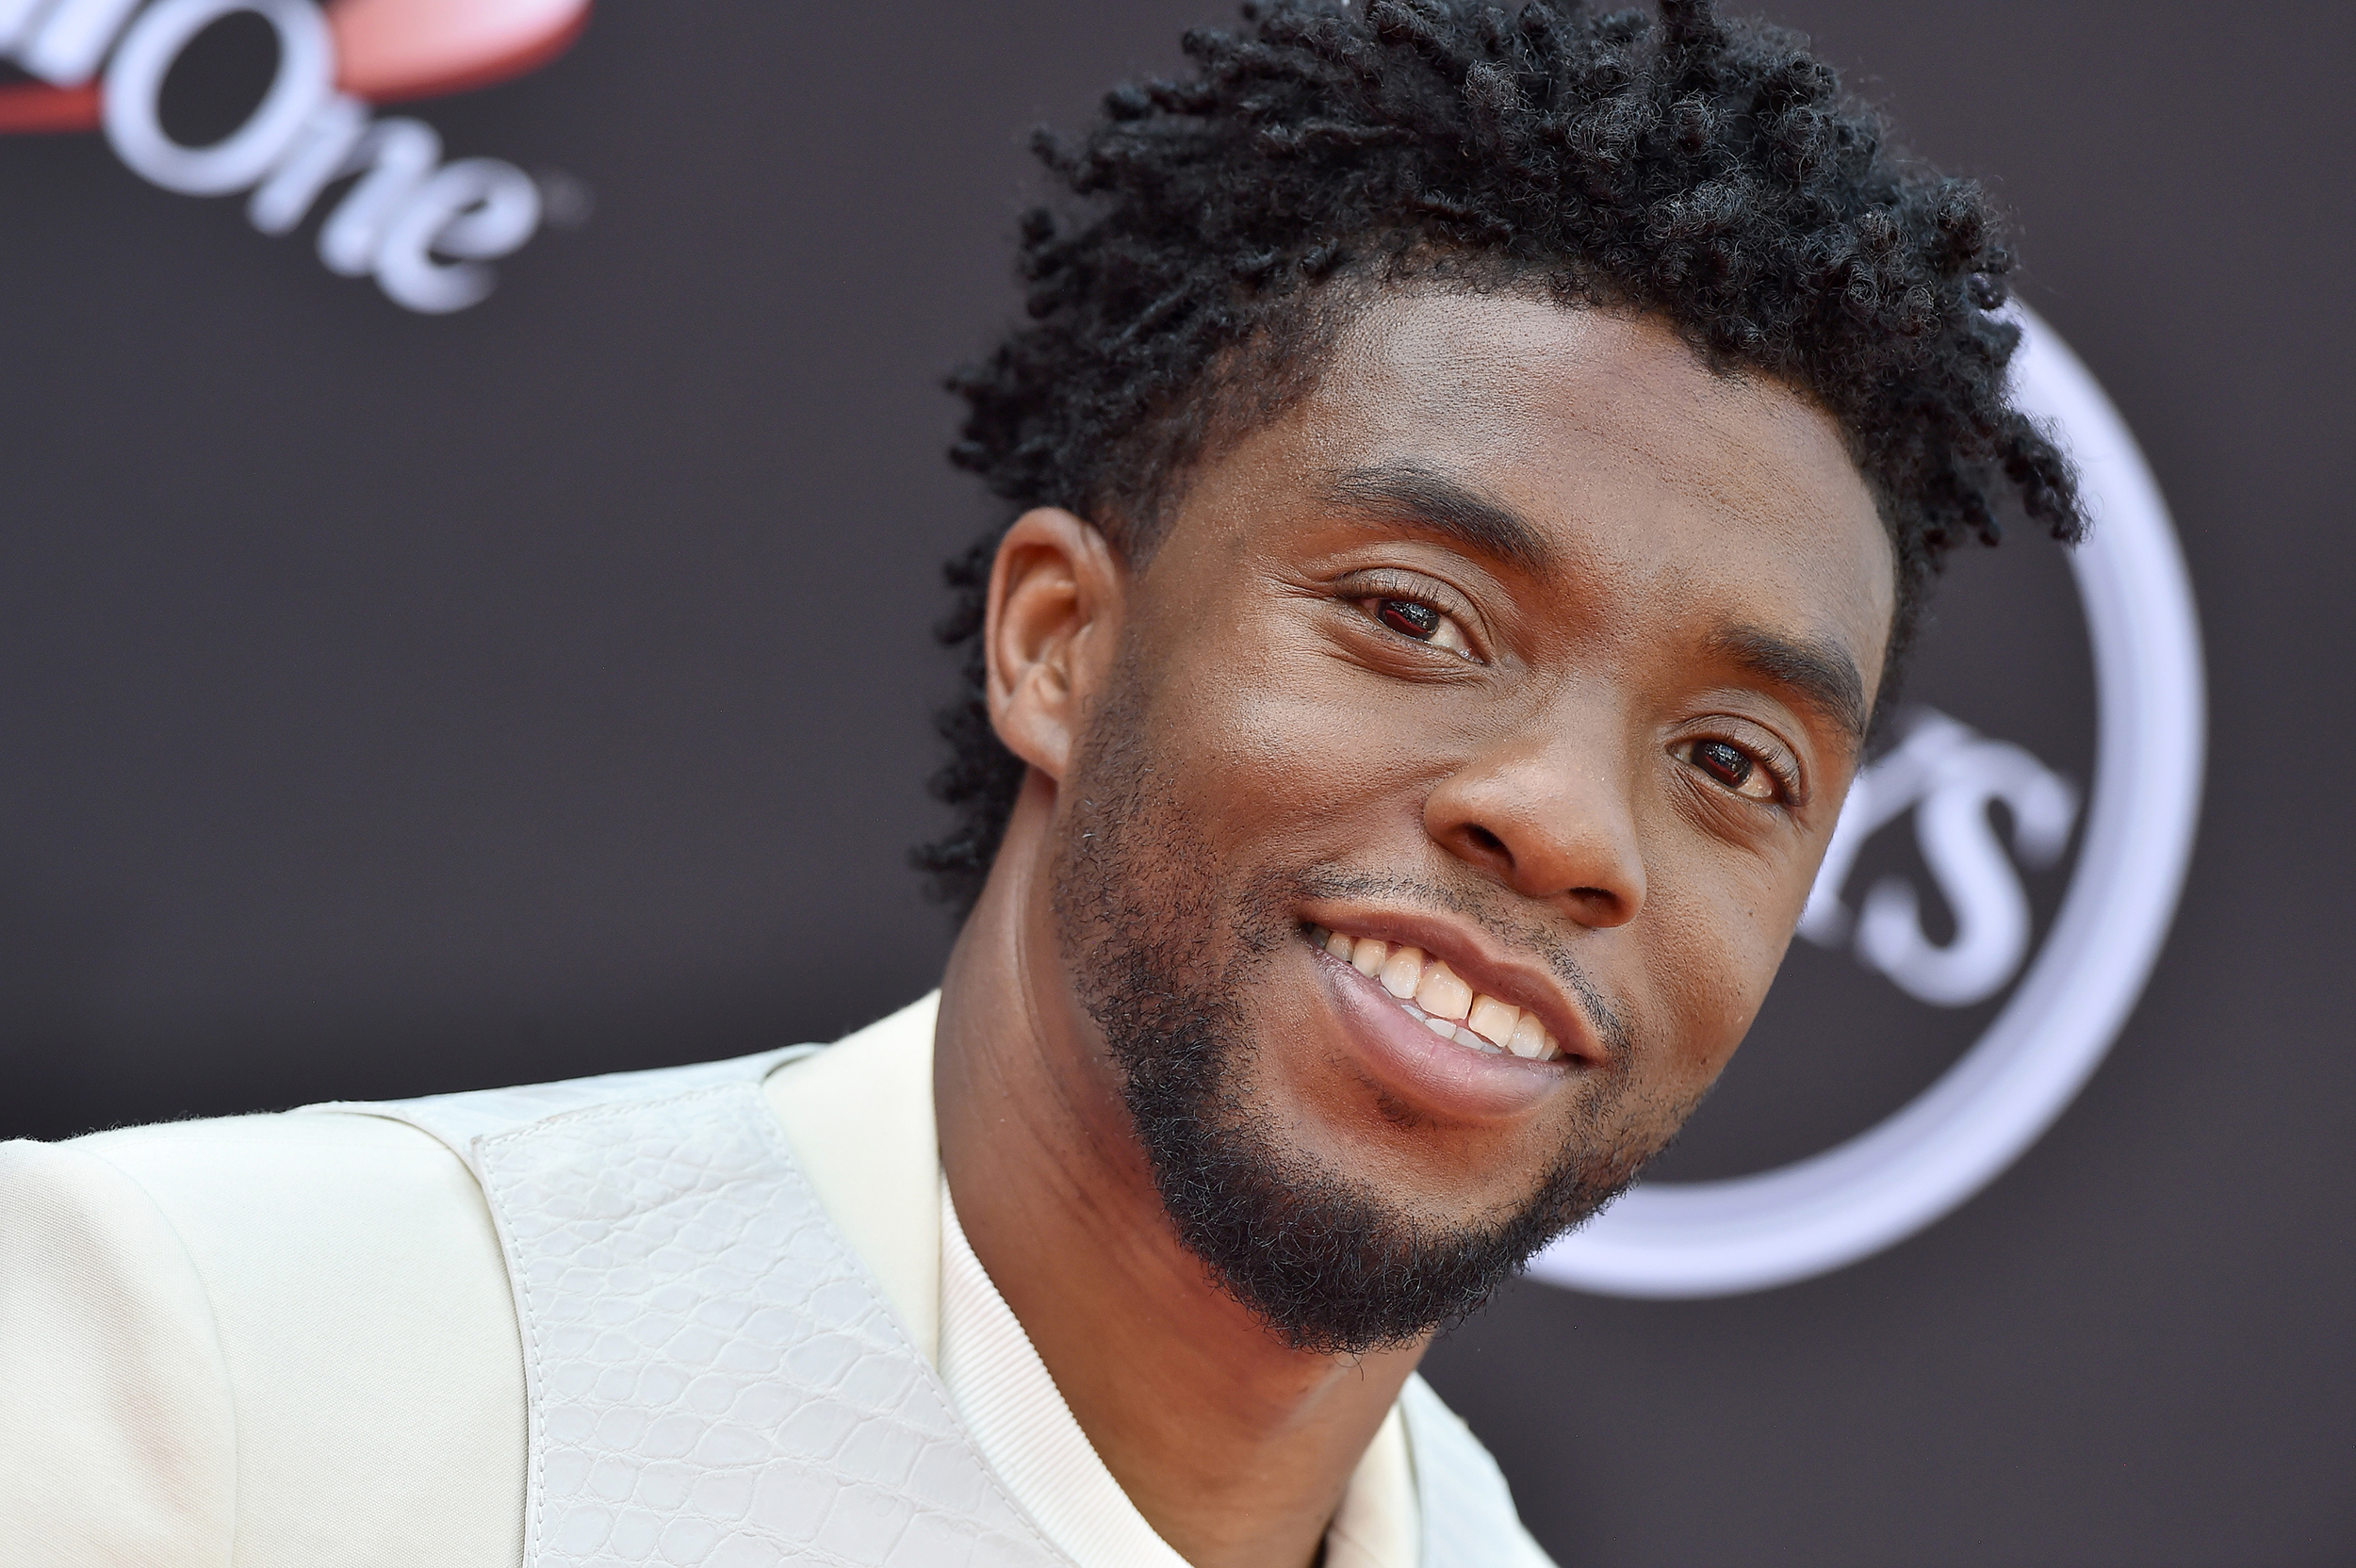 Chadwick Boseman, star of 'Black Panther,' remembered as 'superstar on screen and in life'